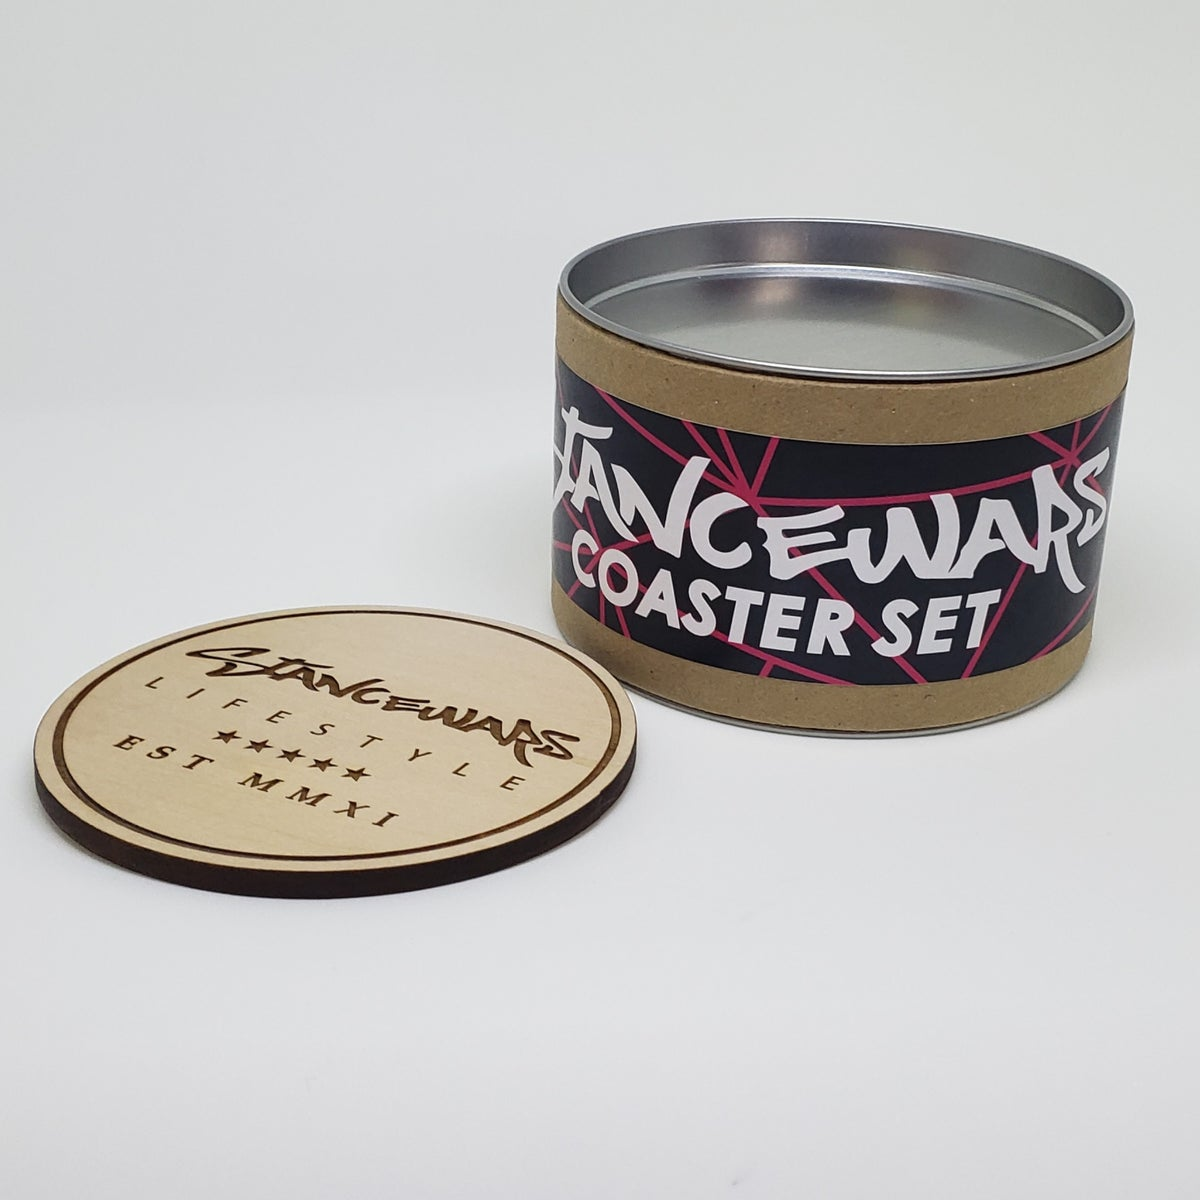 Image of StanceWars Coaster Gift Set